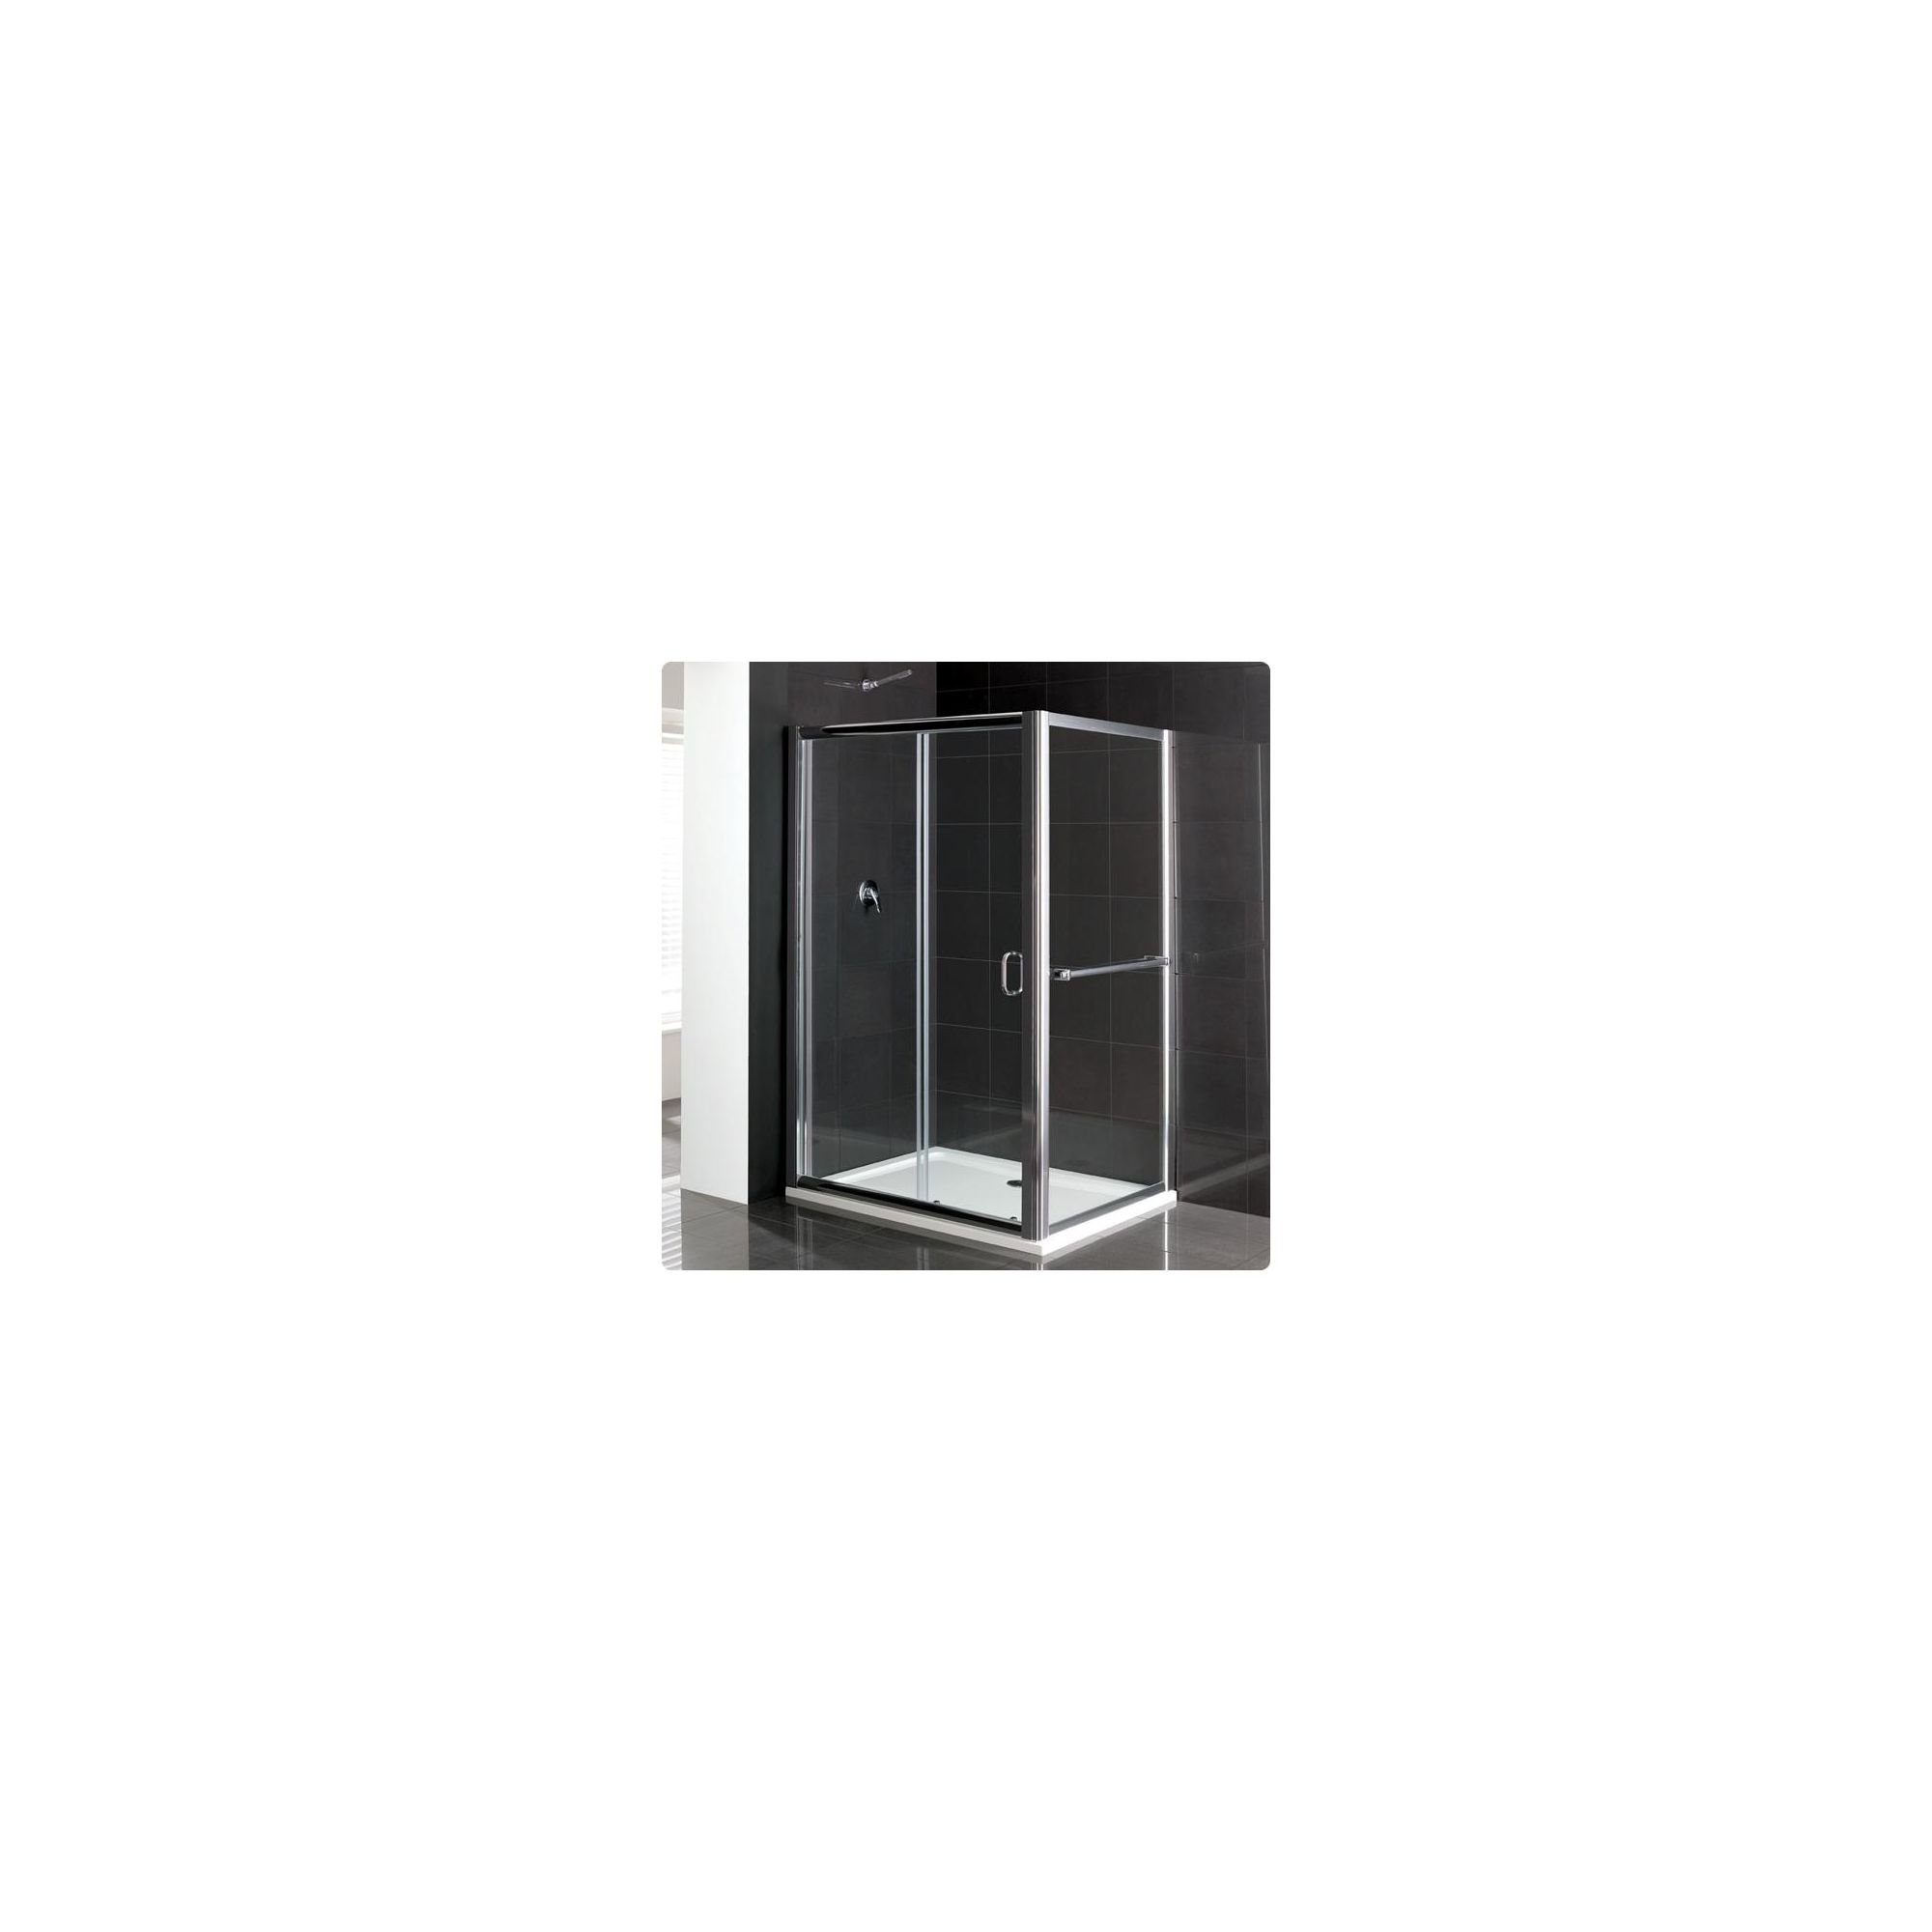 Duchy Elite Silver Sliding Door Shower Enclosure, 1600mm x 760mm, Standard Tray, 6mm Glass at Tesco Direct